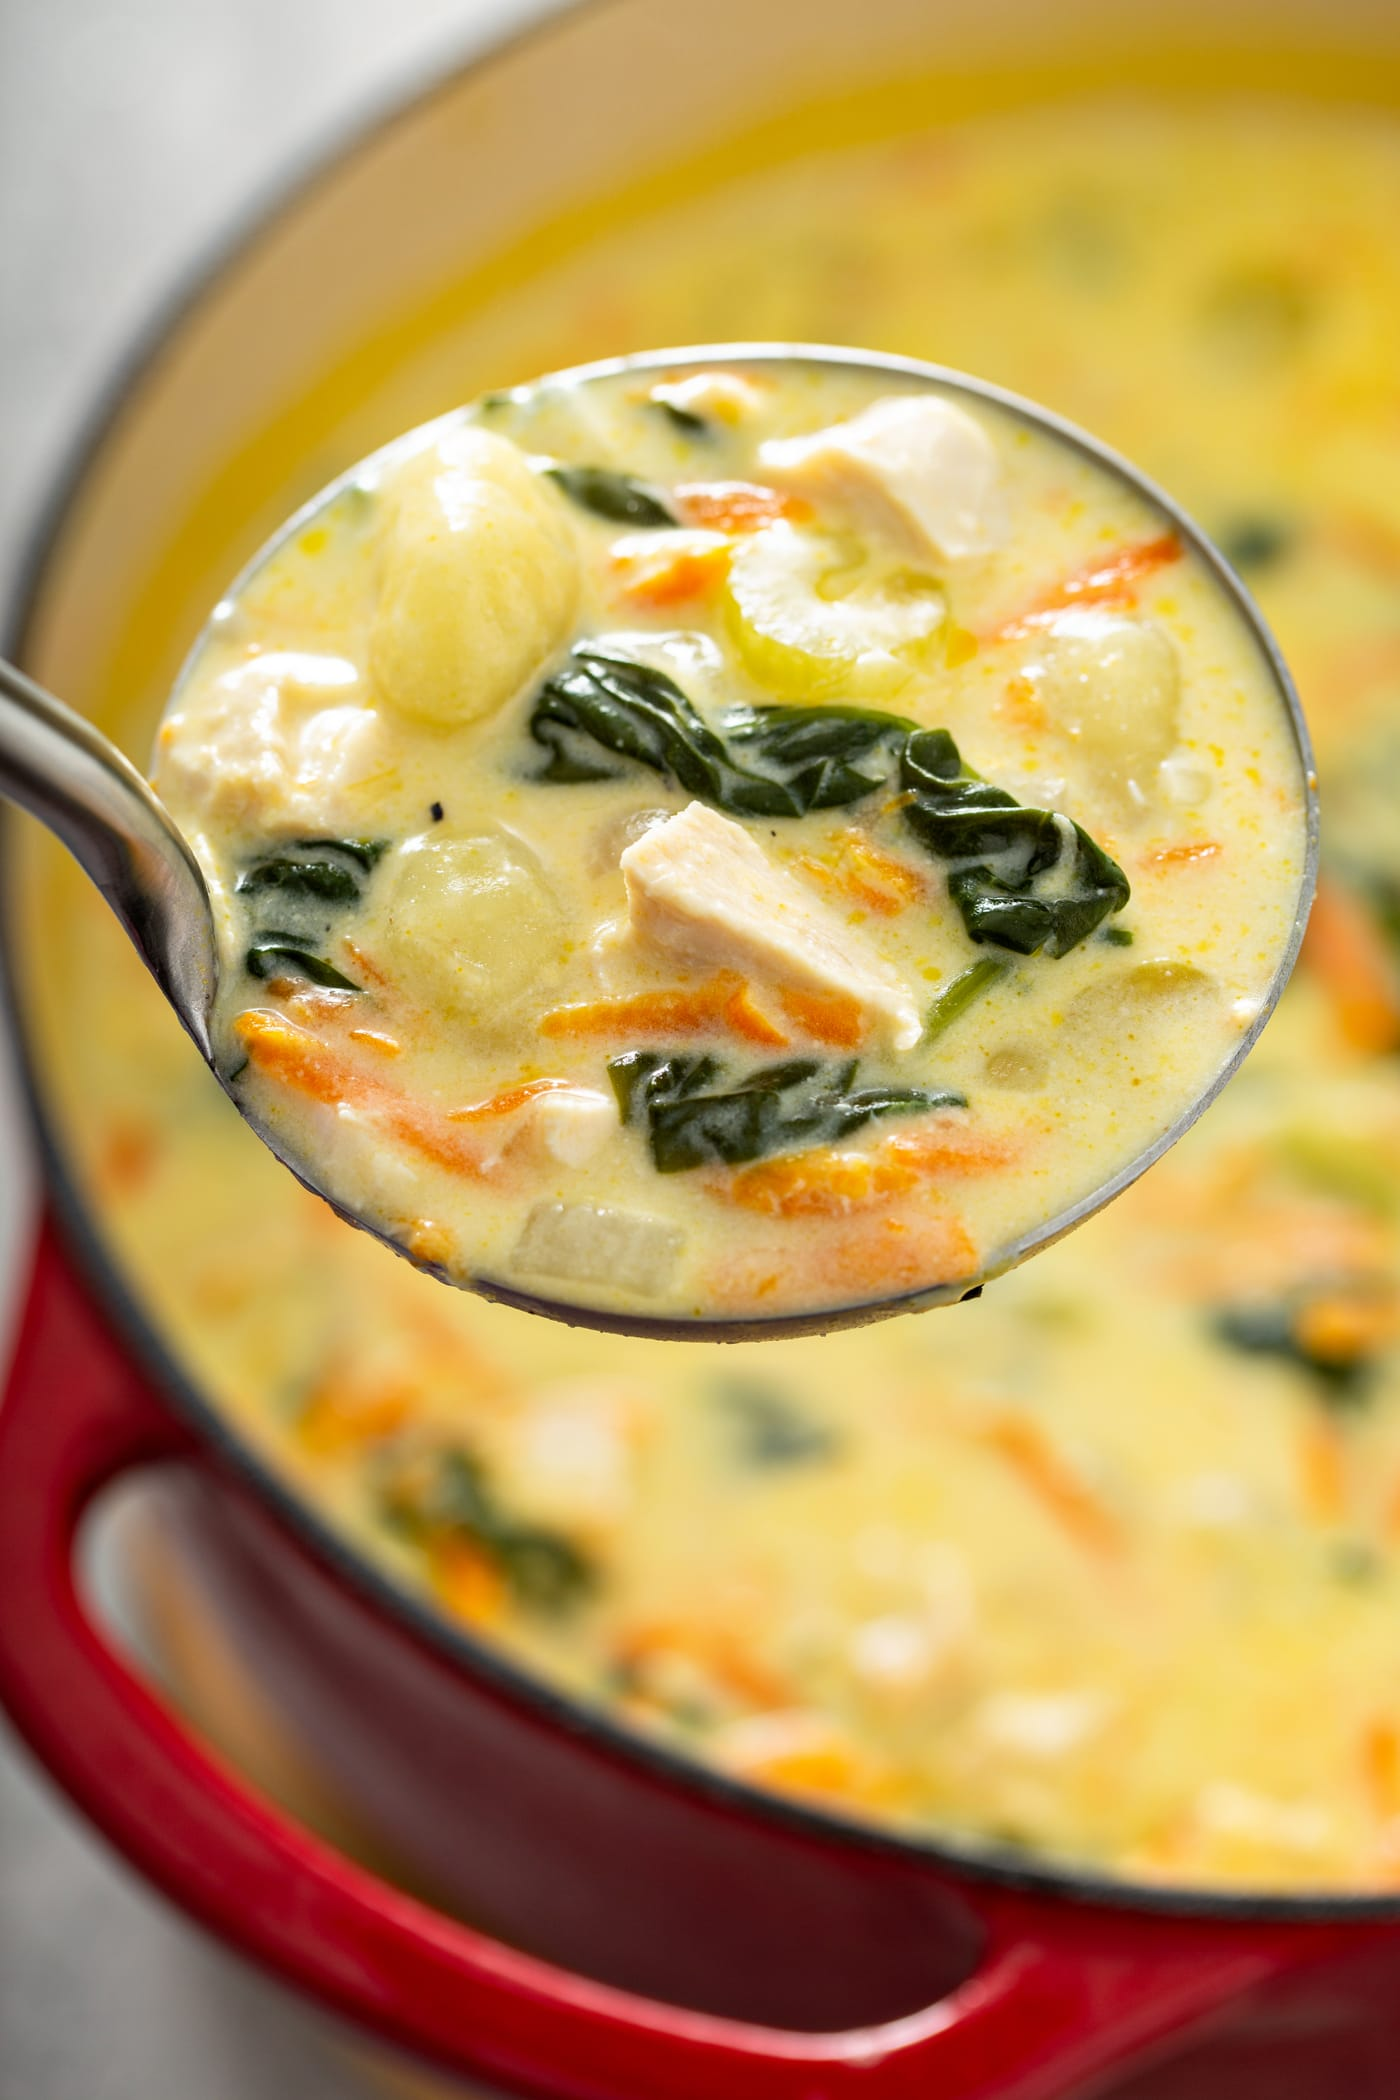 A soup pot of Olive Garden chicken and gnocchi soup with a ladle full of soup. There are shredded carrots, chicken, gnocchi, and spinach in a creamy soup.